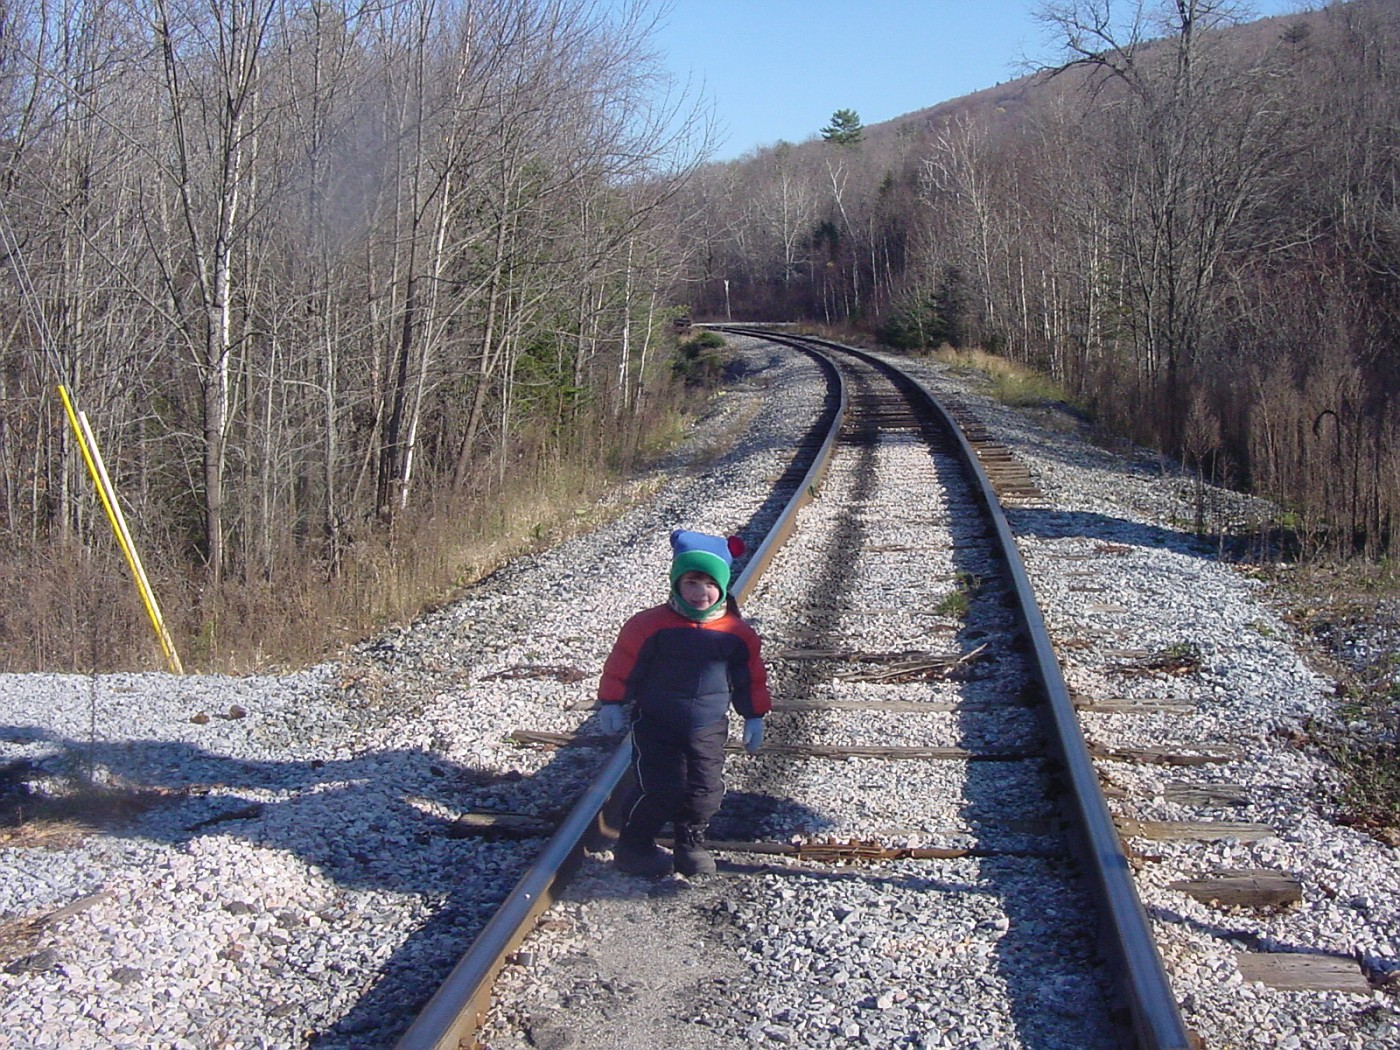 Grisha at the railroad tracks